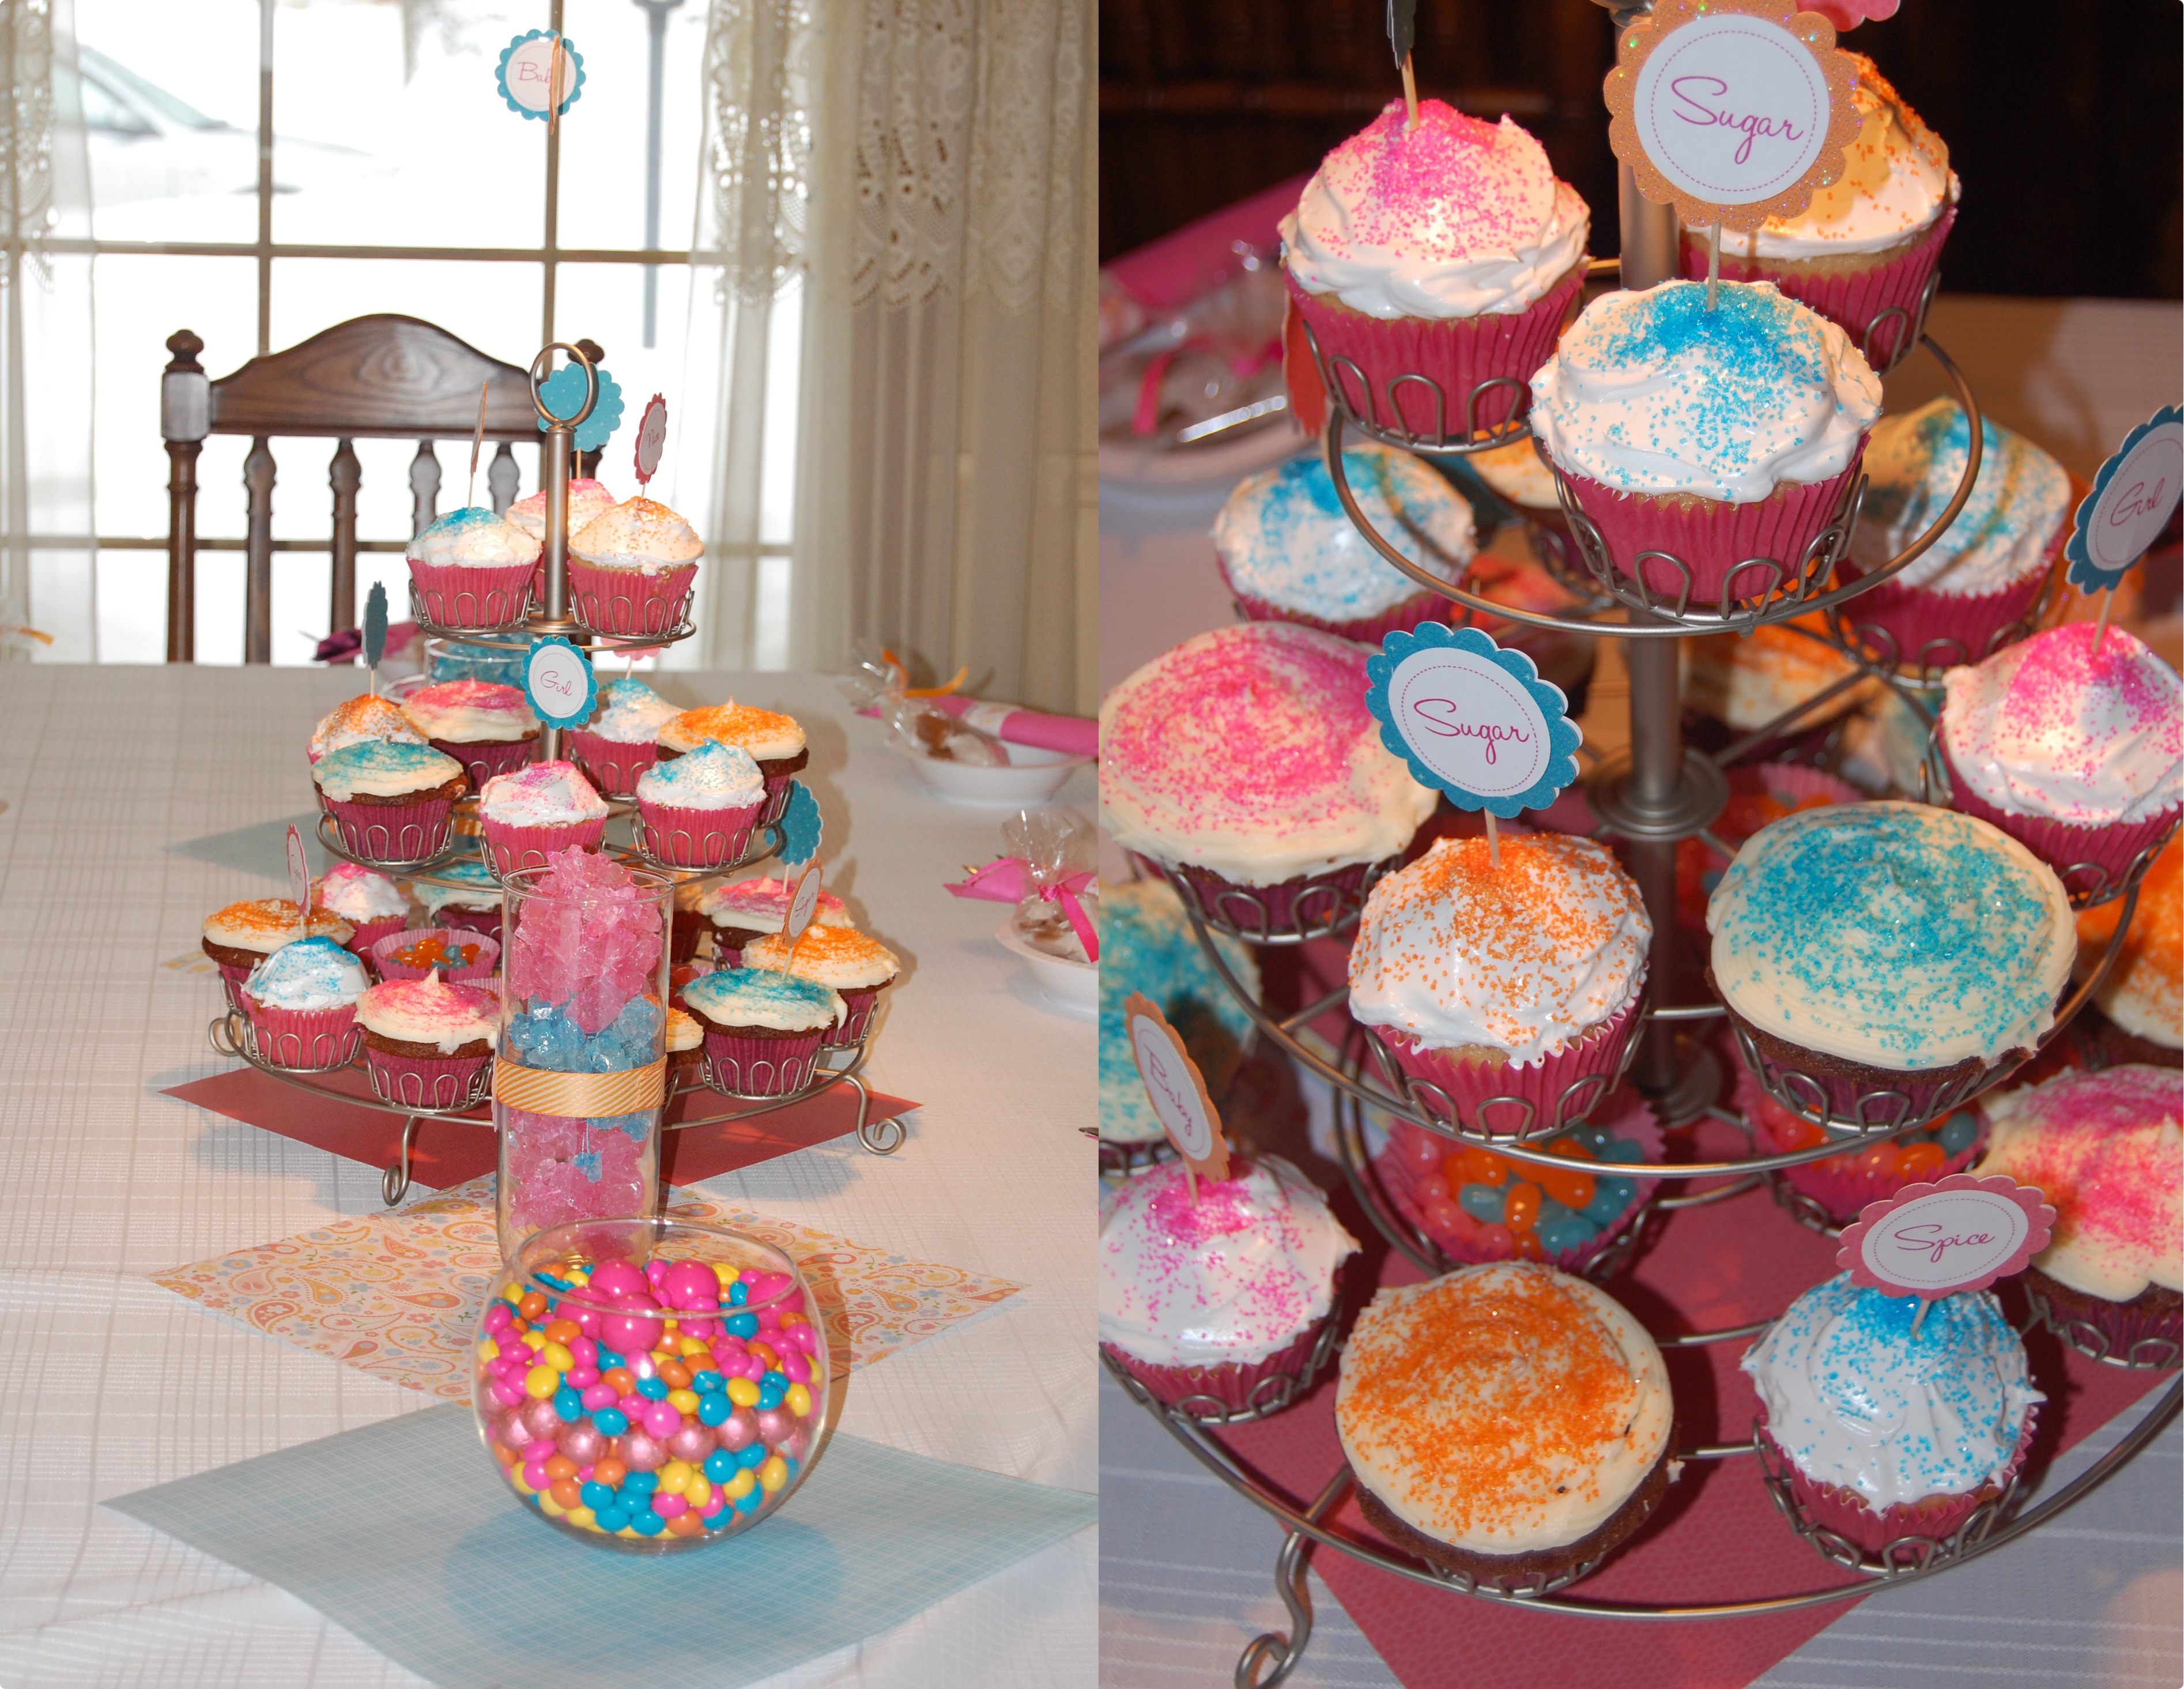 ... like baby, girl, pretty, sugar and spice were placed in the cupcakes